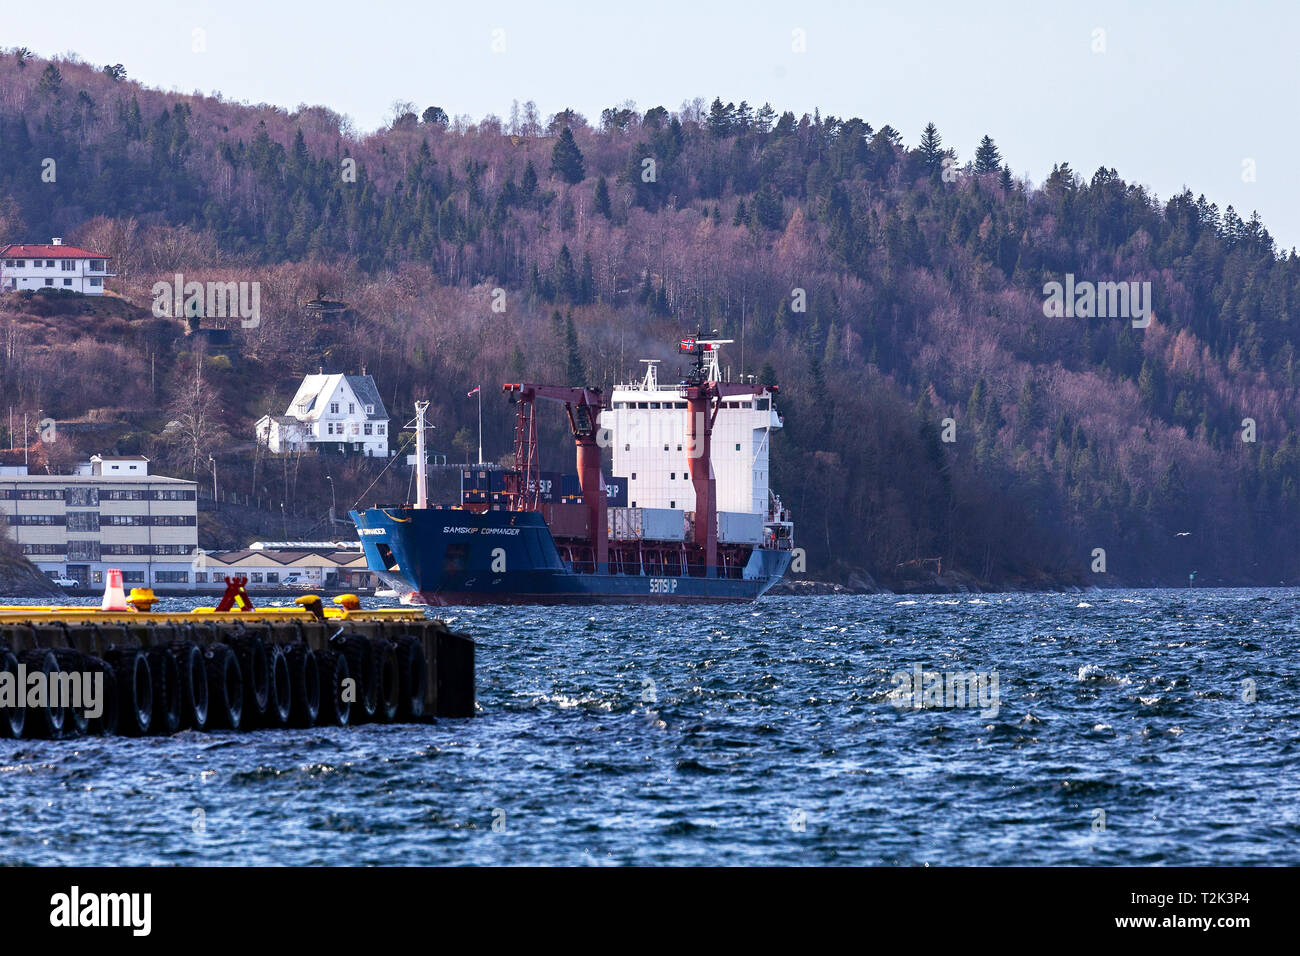 General cargo and container vessel Samskip Commander at sea, arriving in the port of Bergen, Norway. - Stock Image